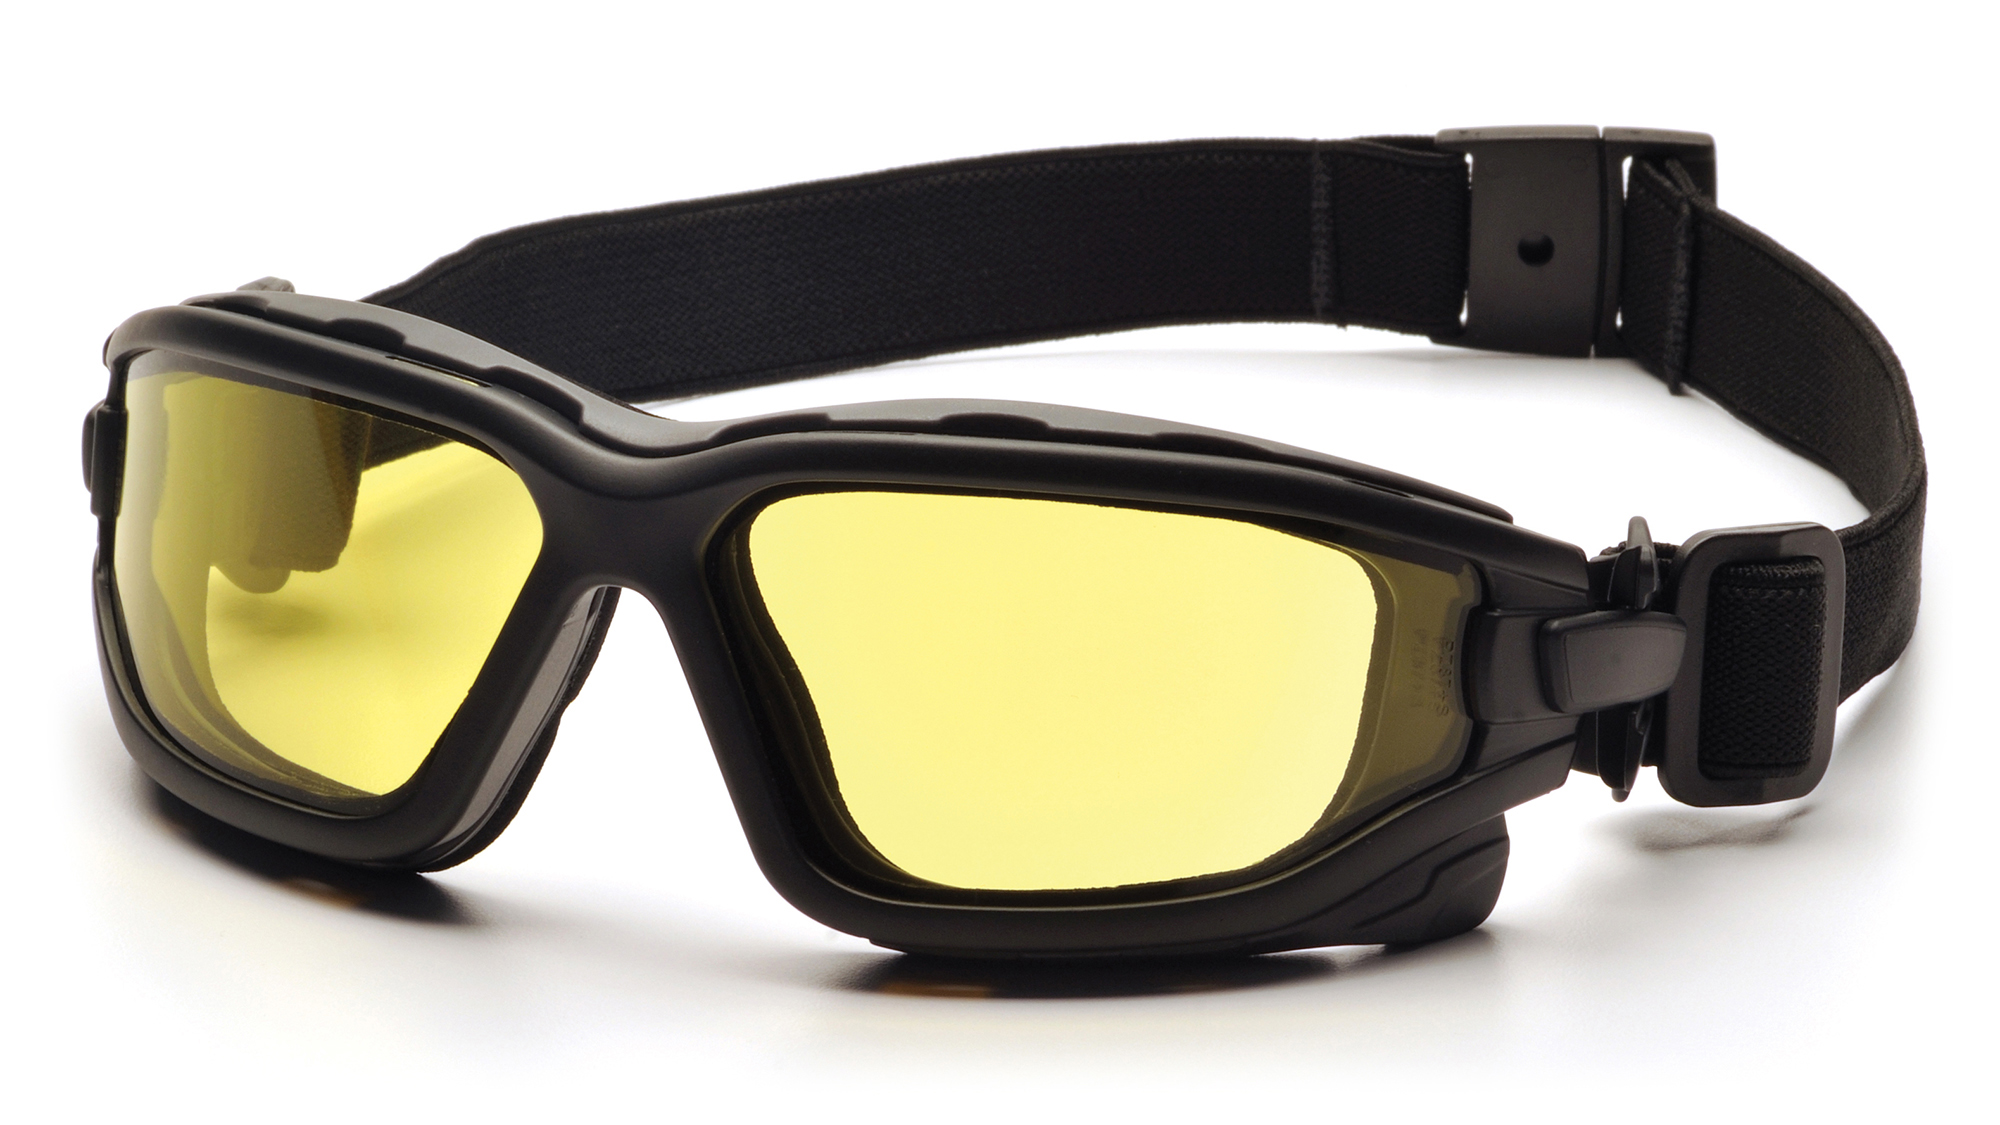 Pyramex SB7030SDT I-Force Safety Eyewear, Amber Dual Anti-Fog Lens with Black Temples / Strap, Box/12